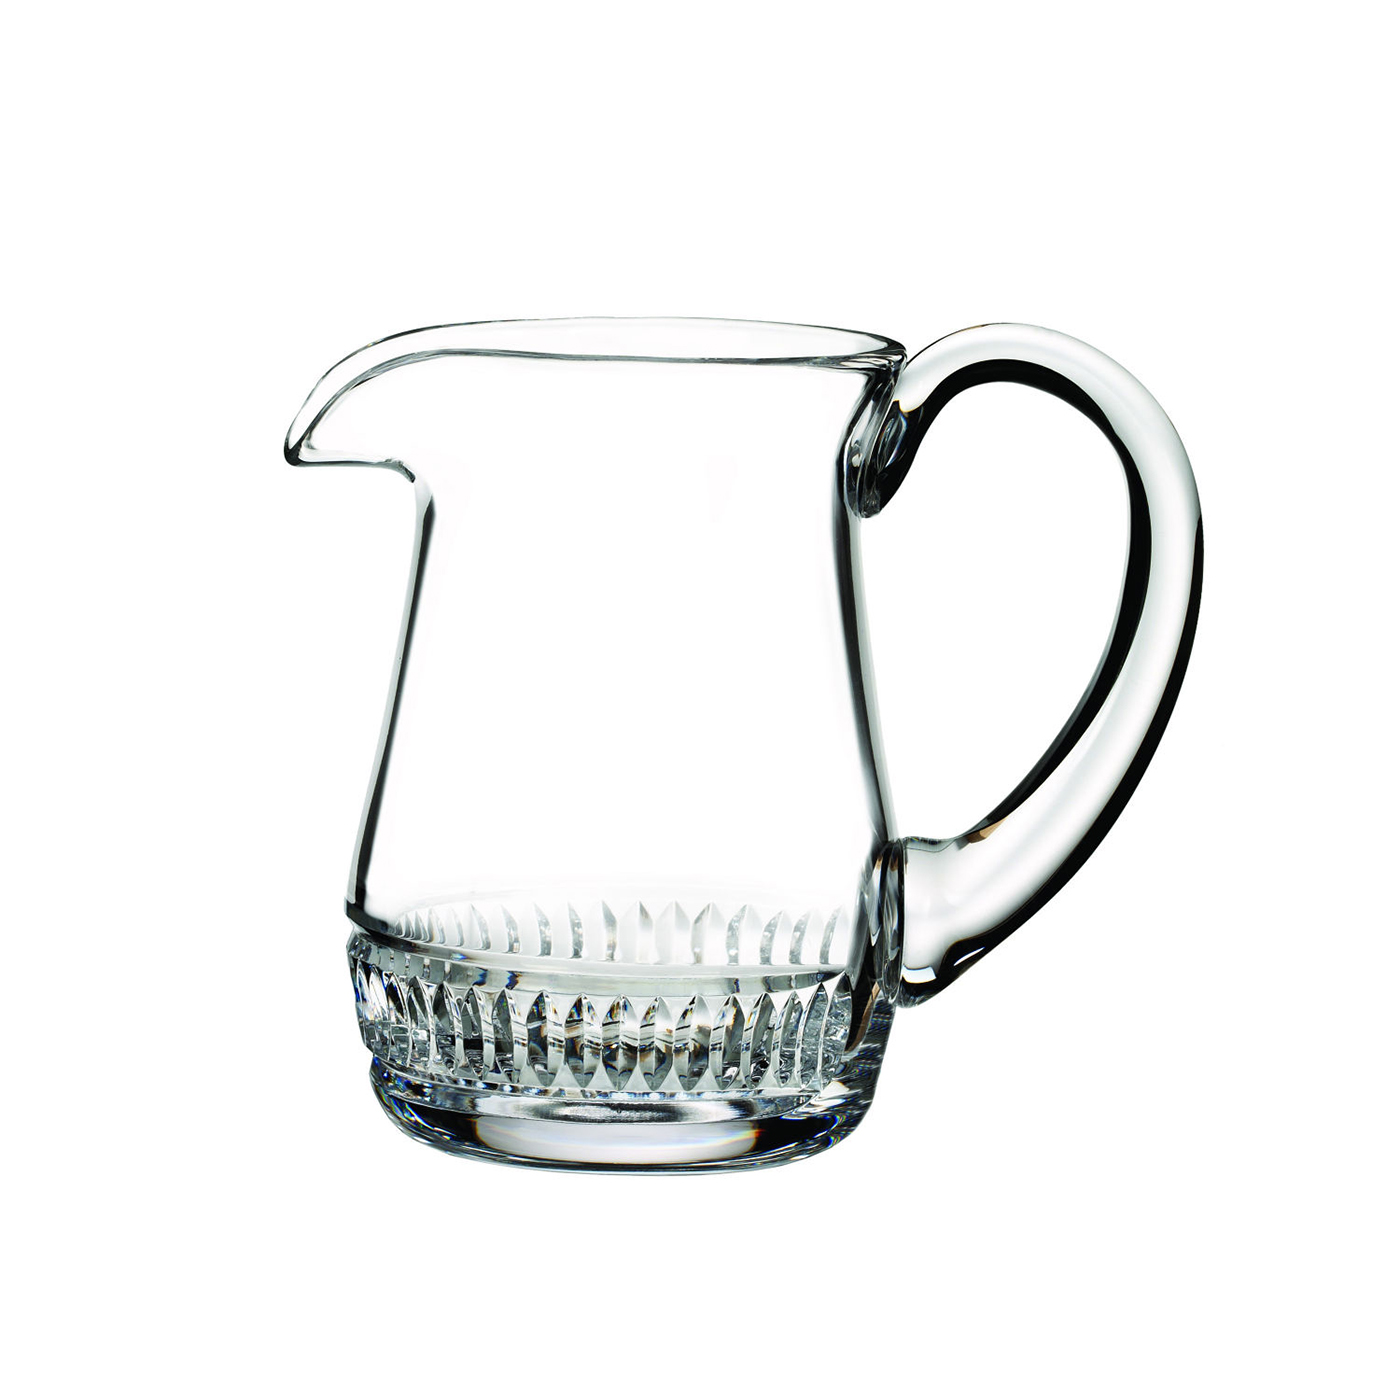 Town & Country Pitcher by Waterford